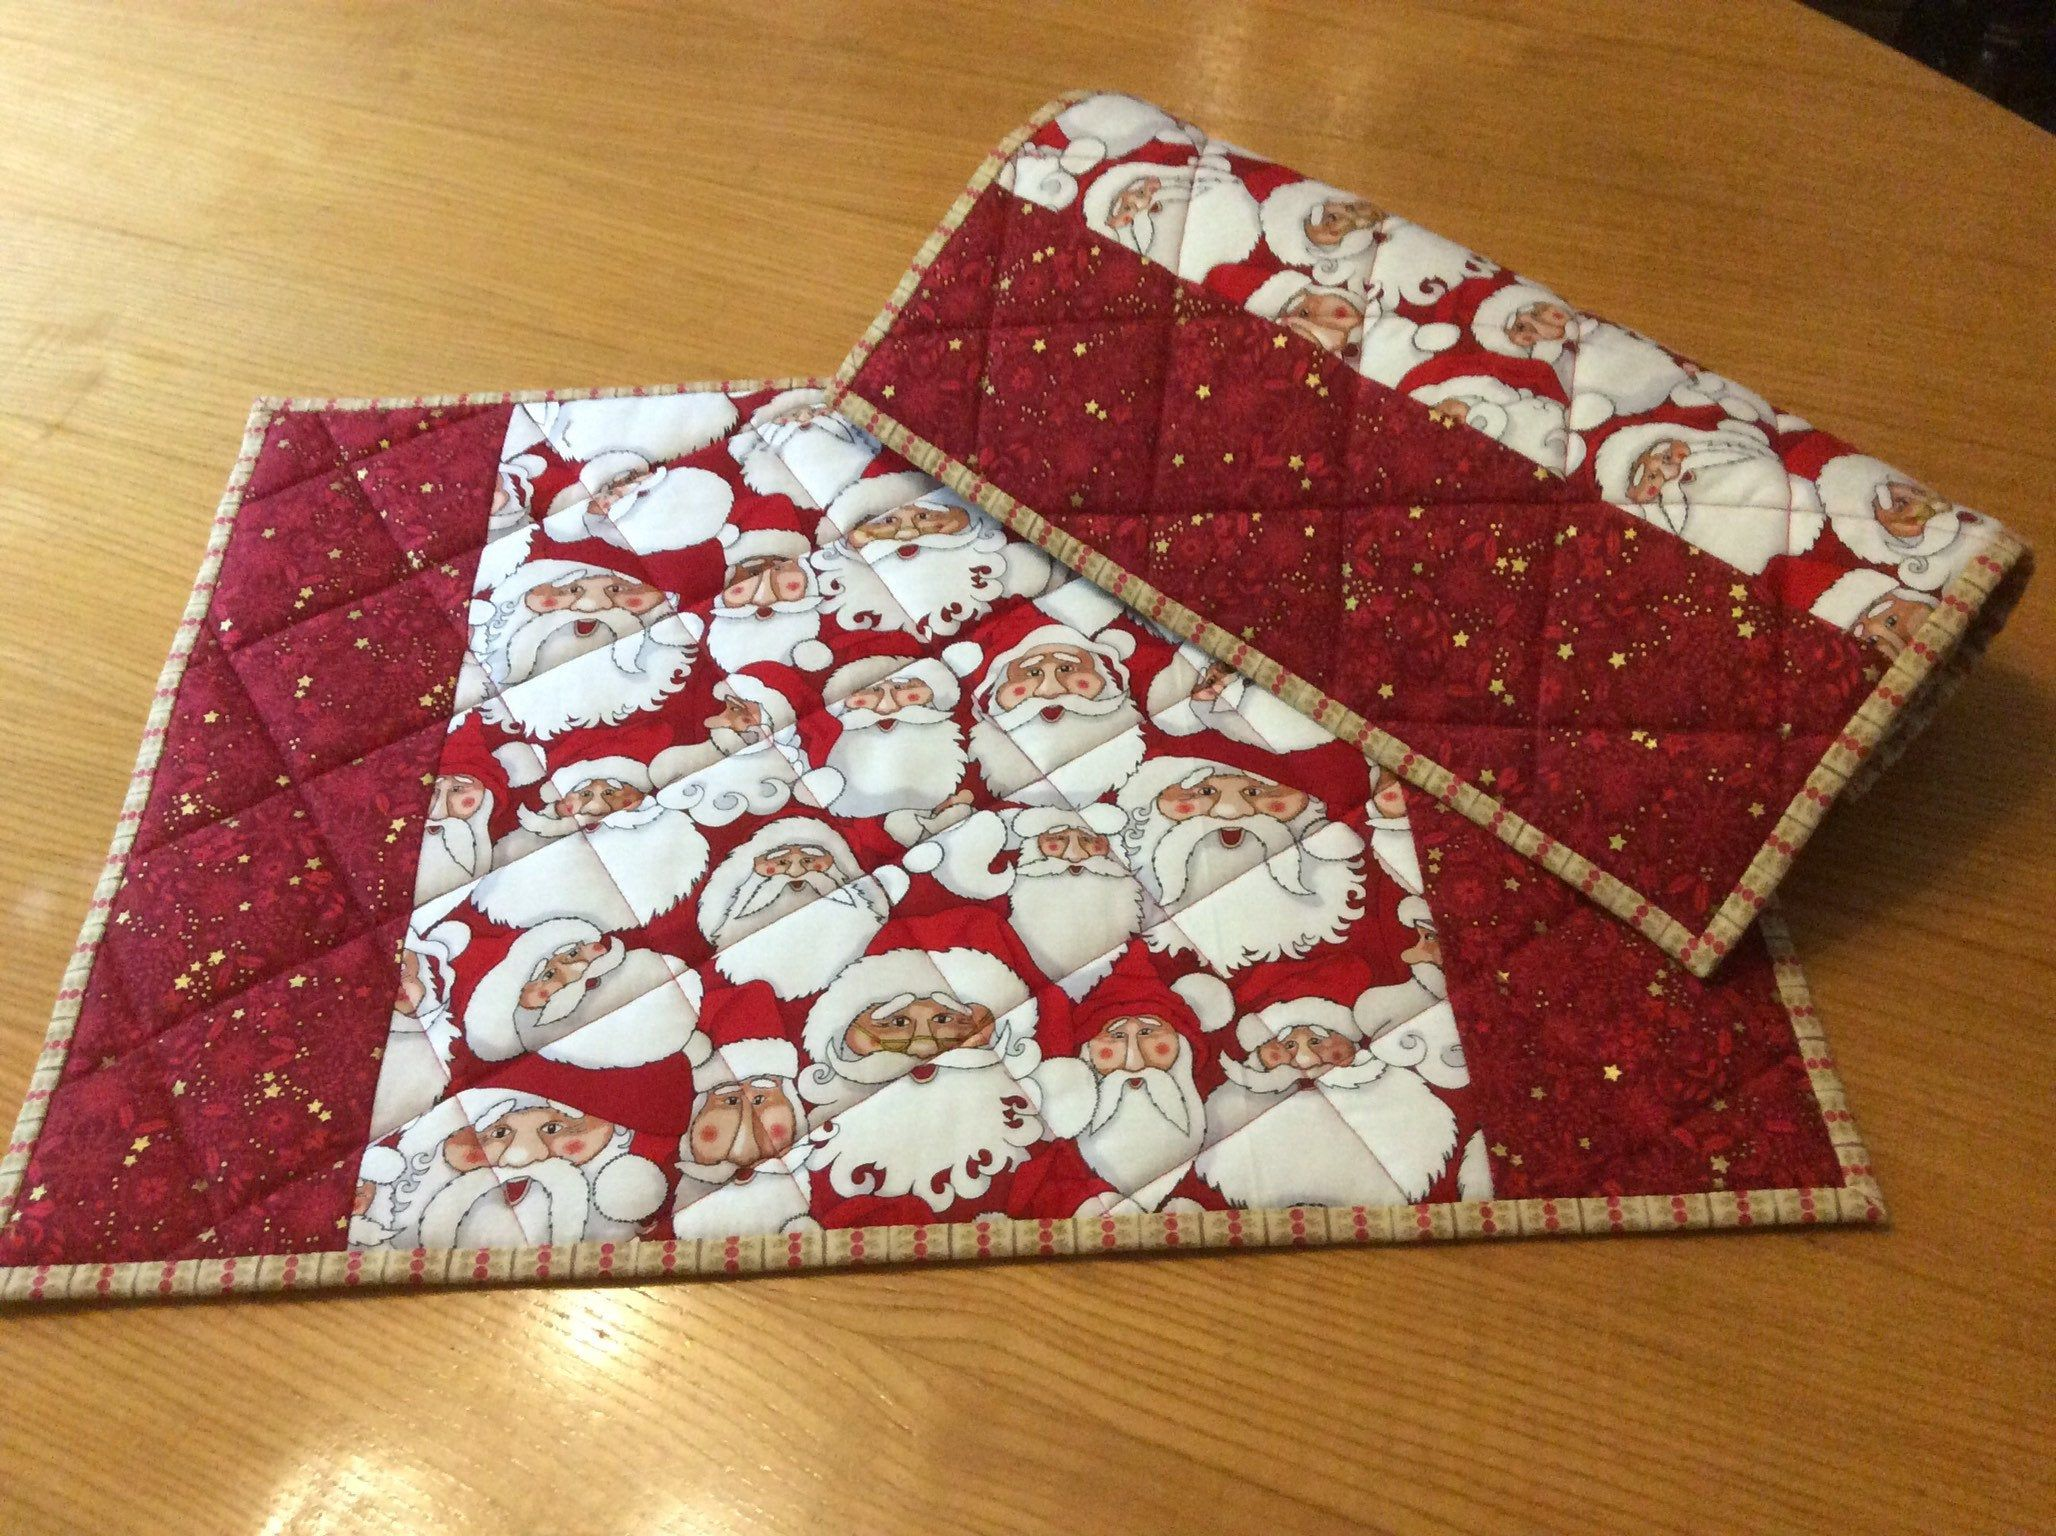 Christmas Quilted Placemats Set Of 2 Placemats Handmade Size Etsy Christmas Quilt Place Mats Quilted Placemats